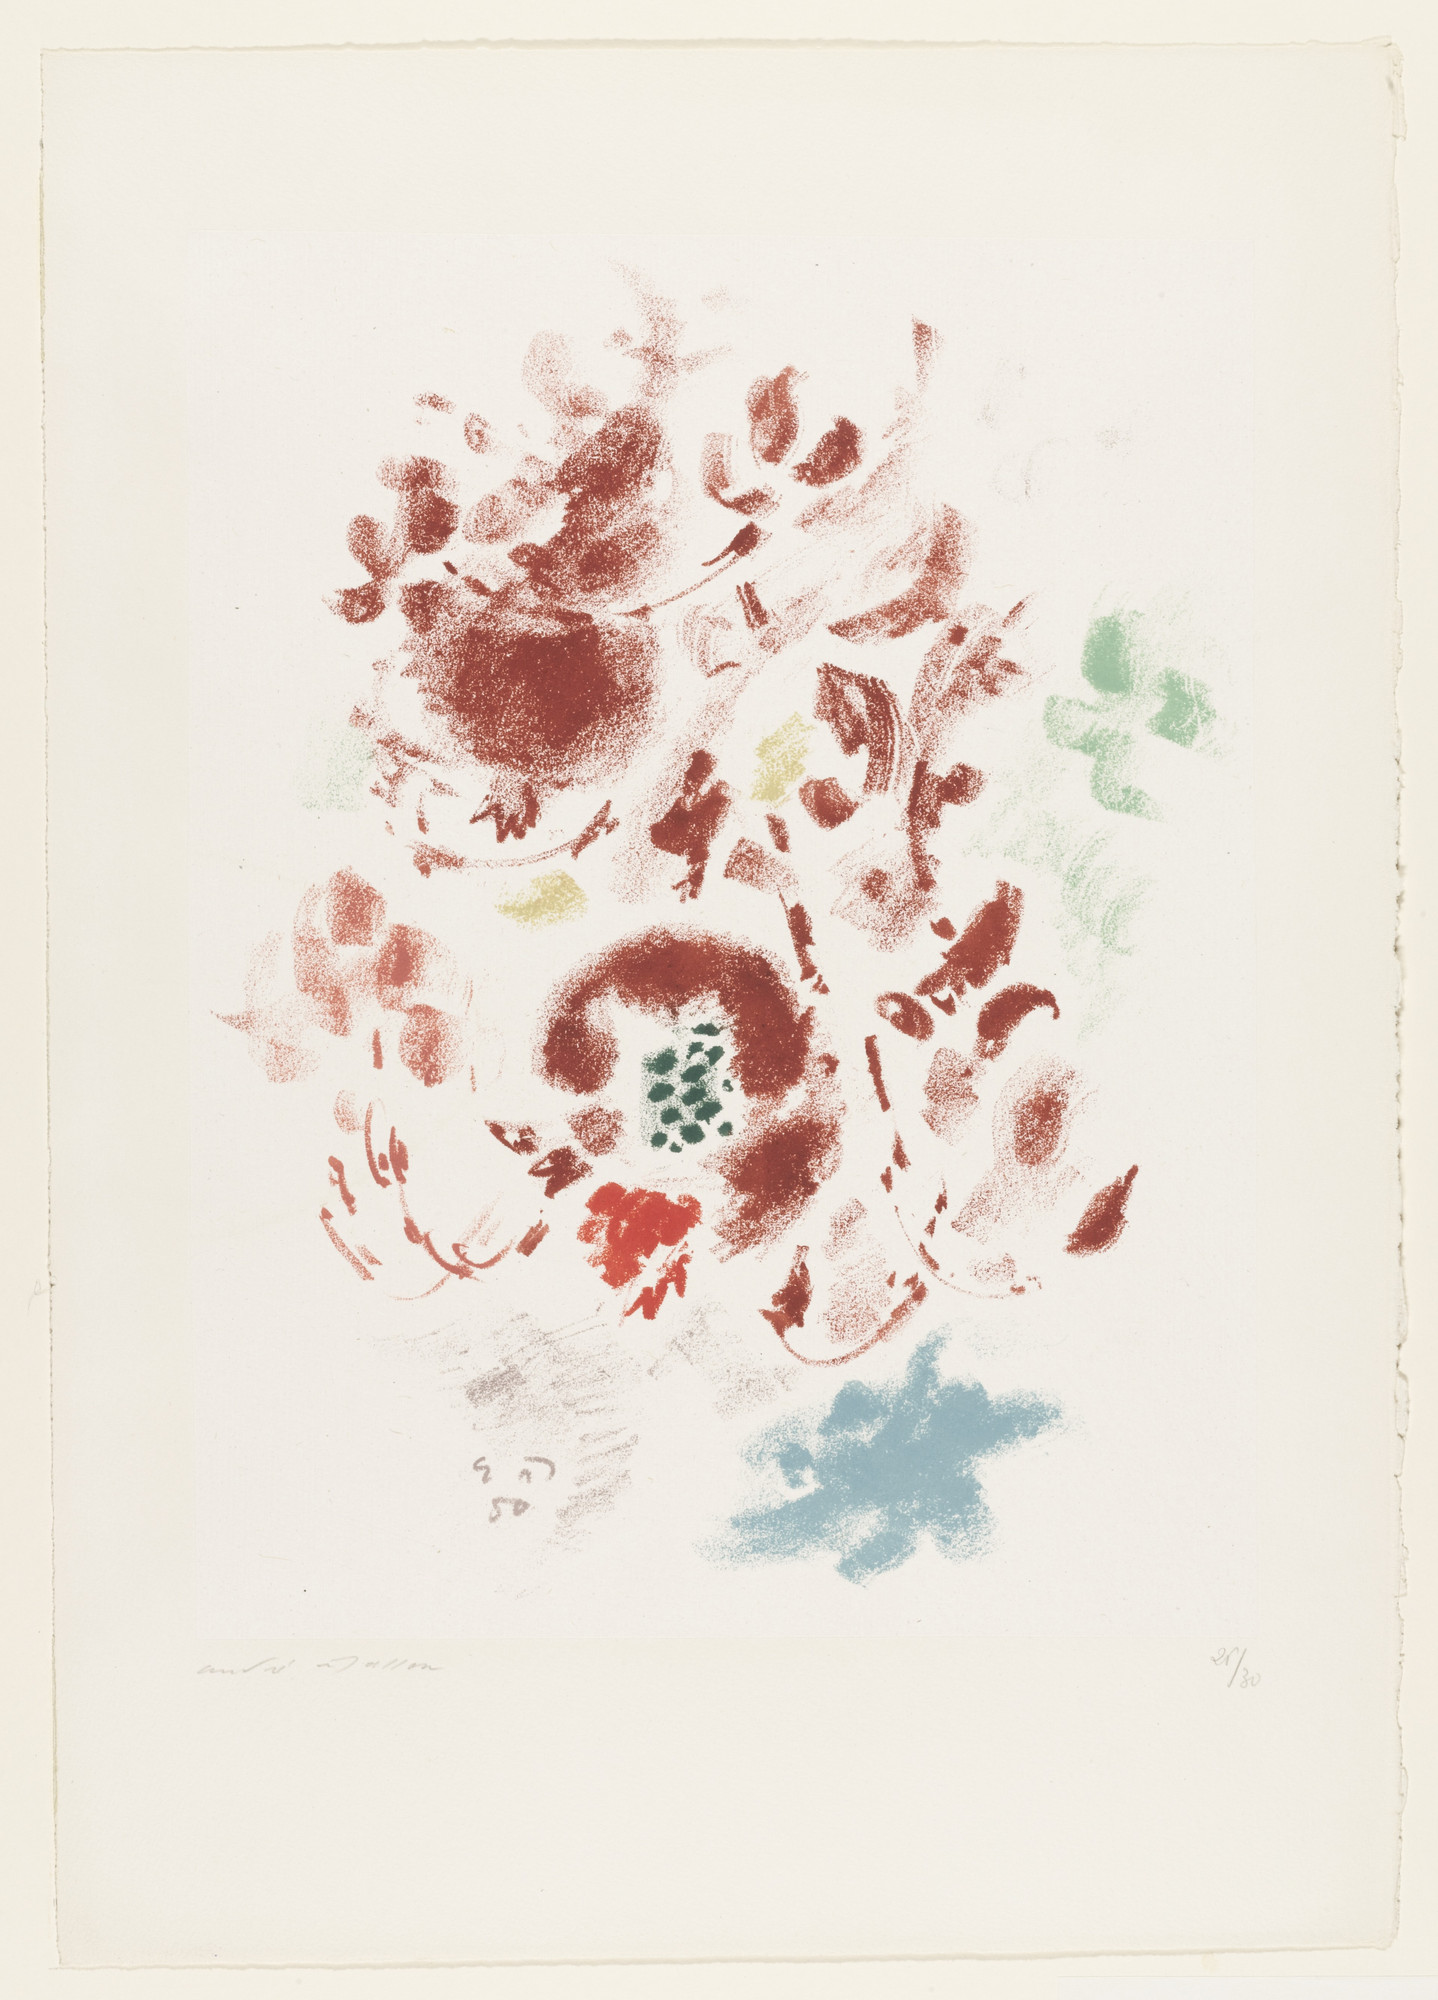 André Masson. Red Pomegranates. 1950